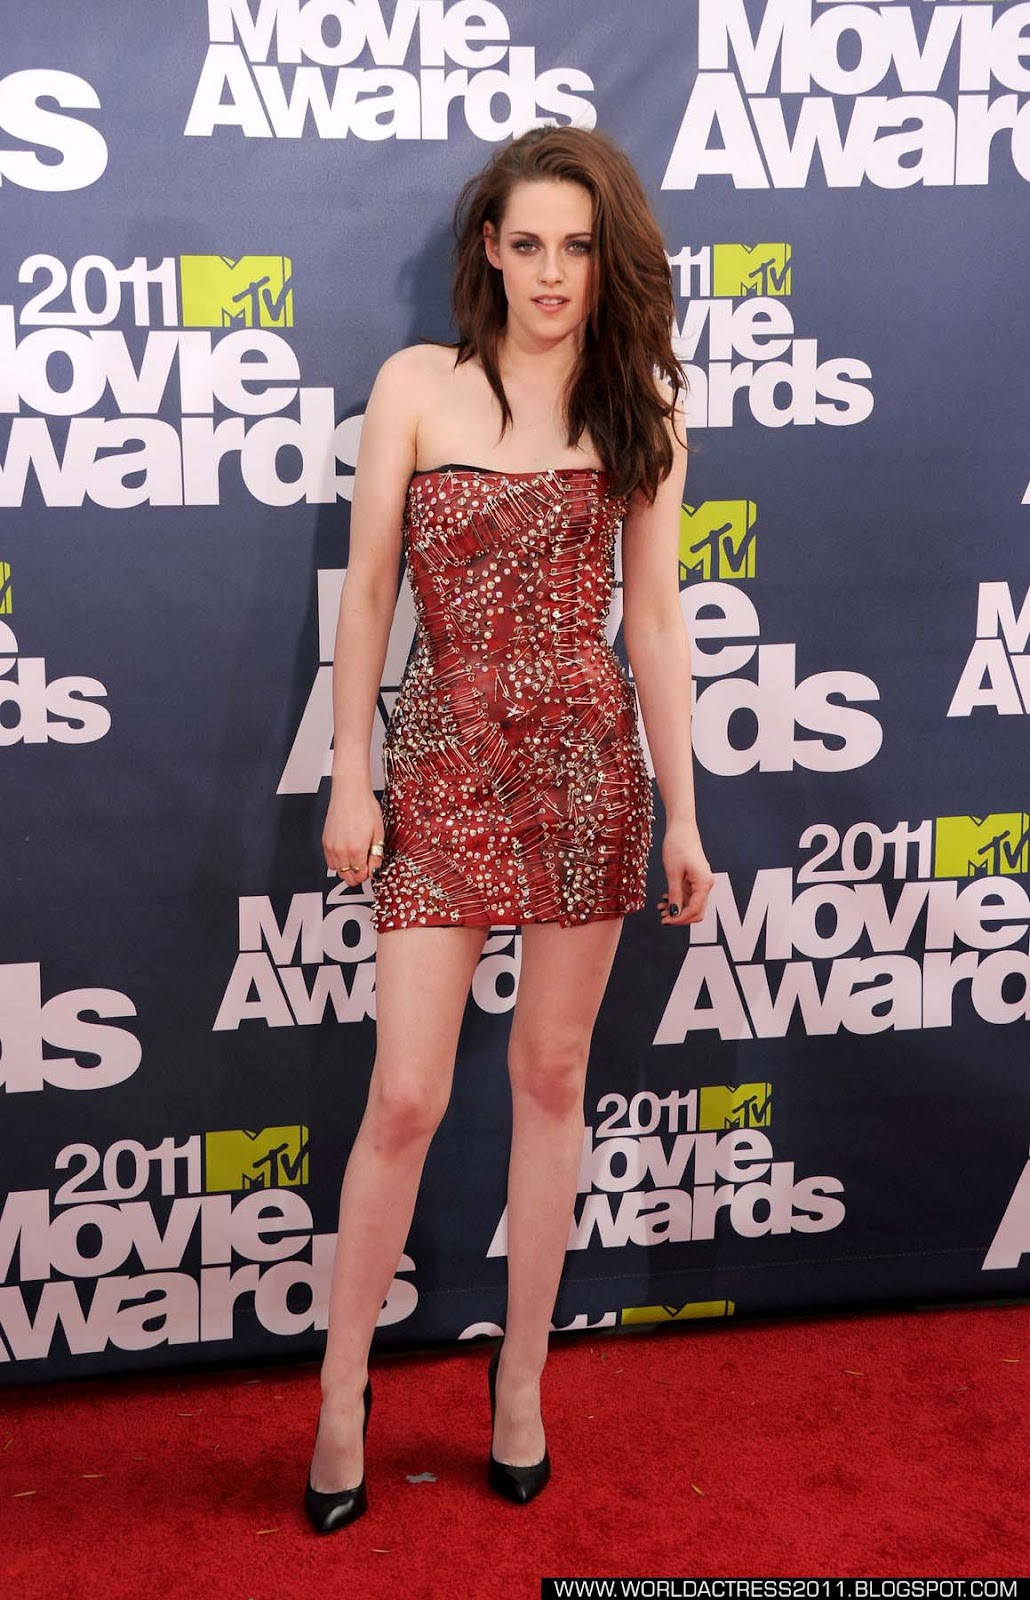 kristen stewart,MTV,award,red carpet,gallery,hot,breast,nipple slip,topless